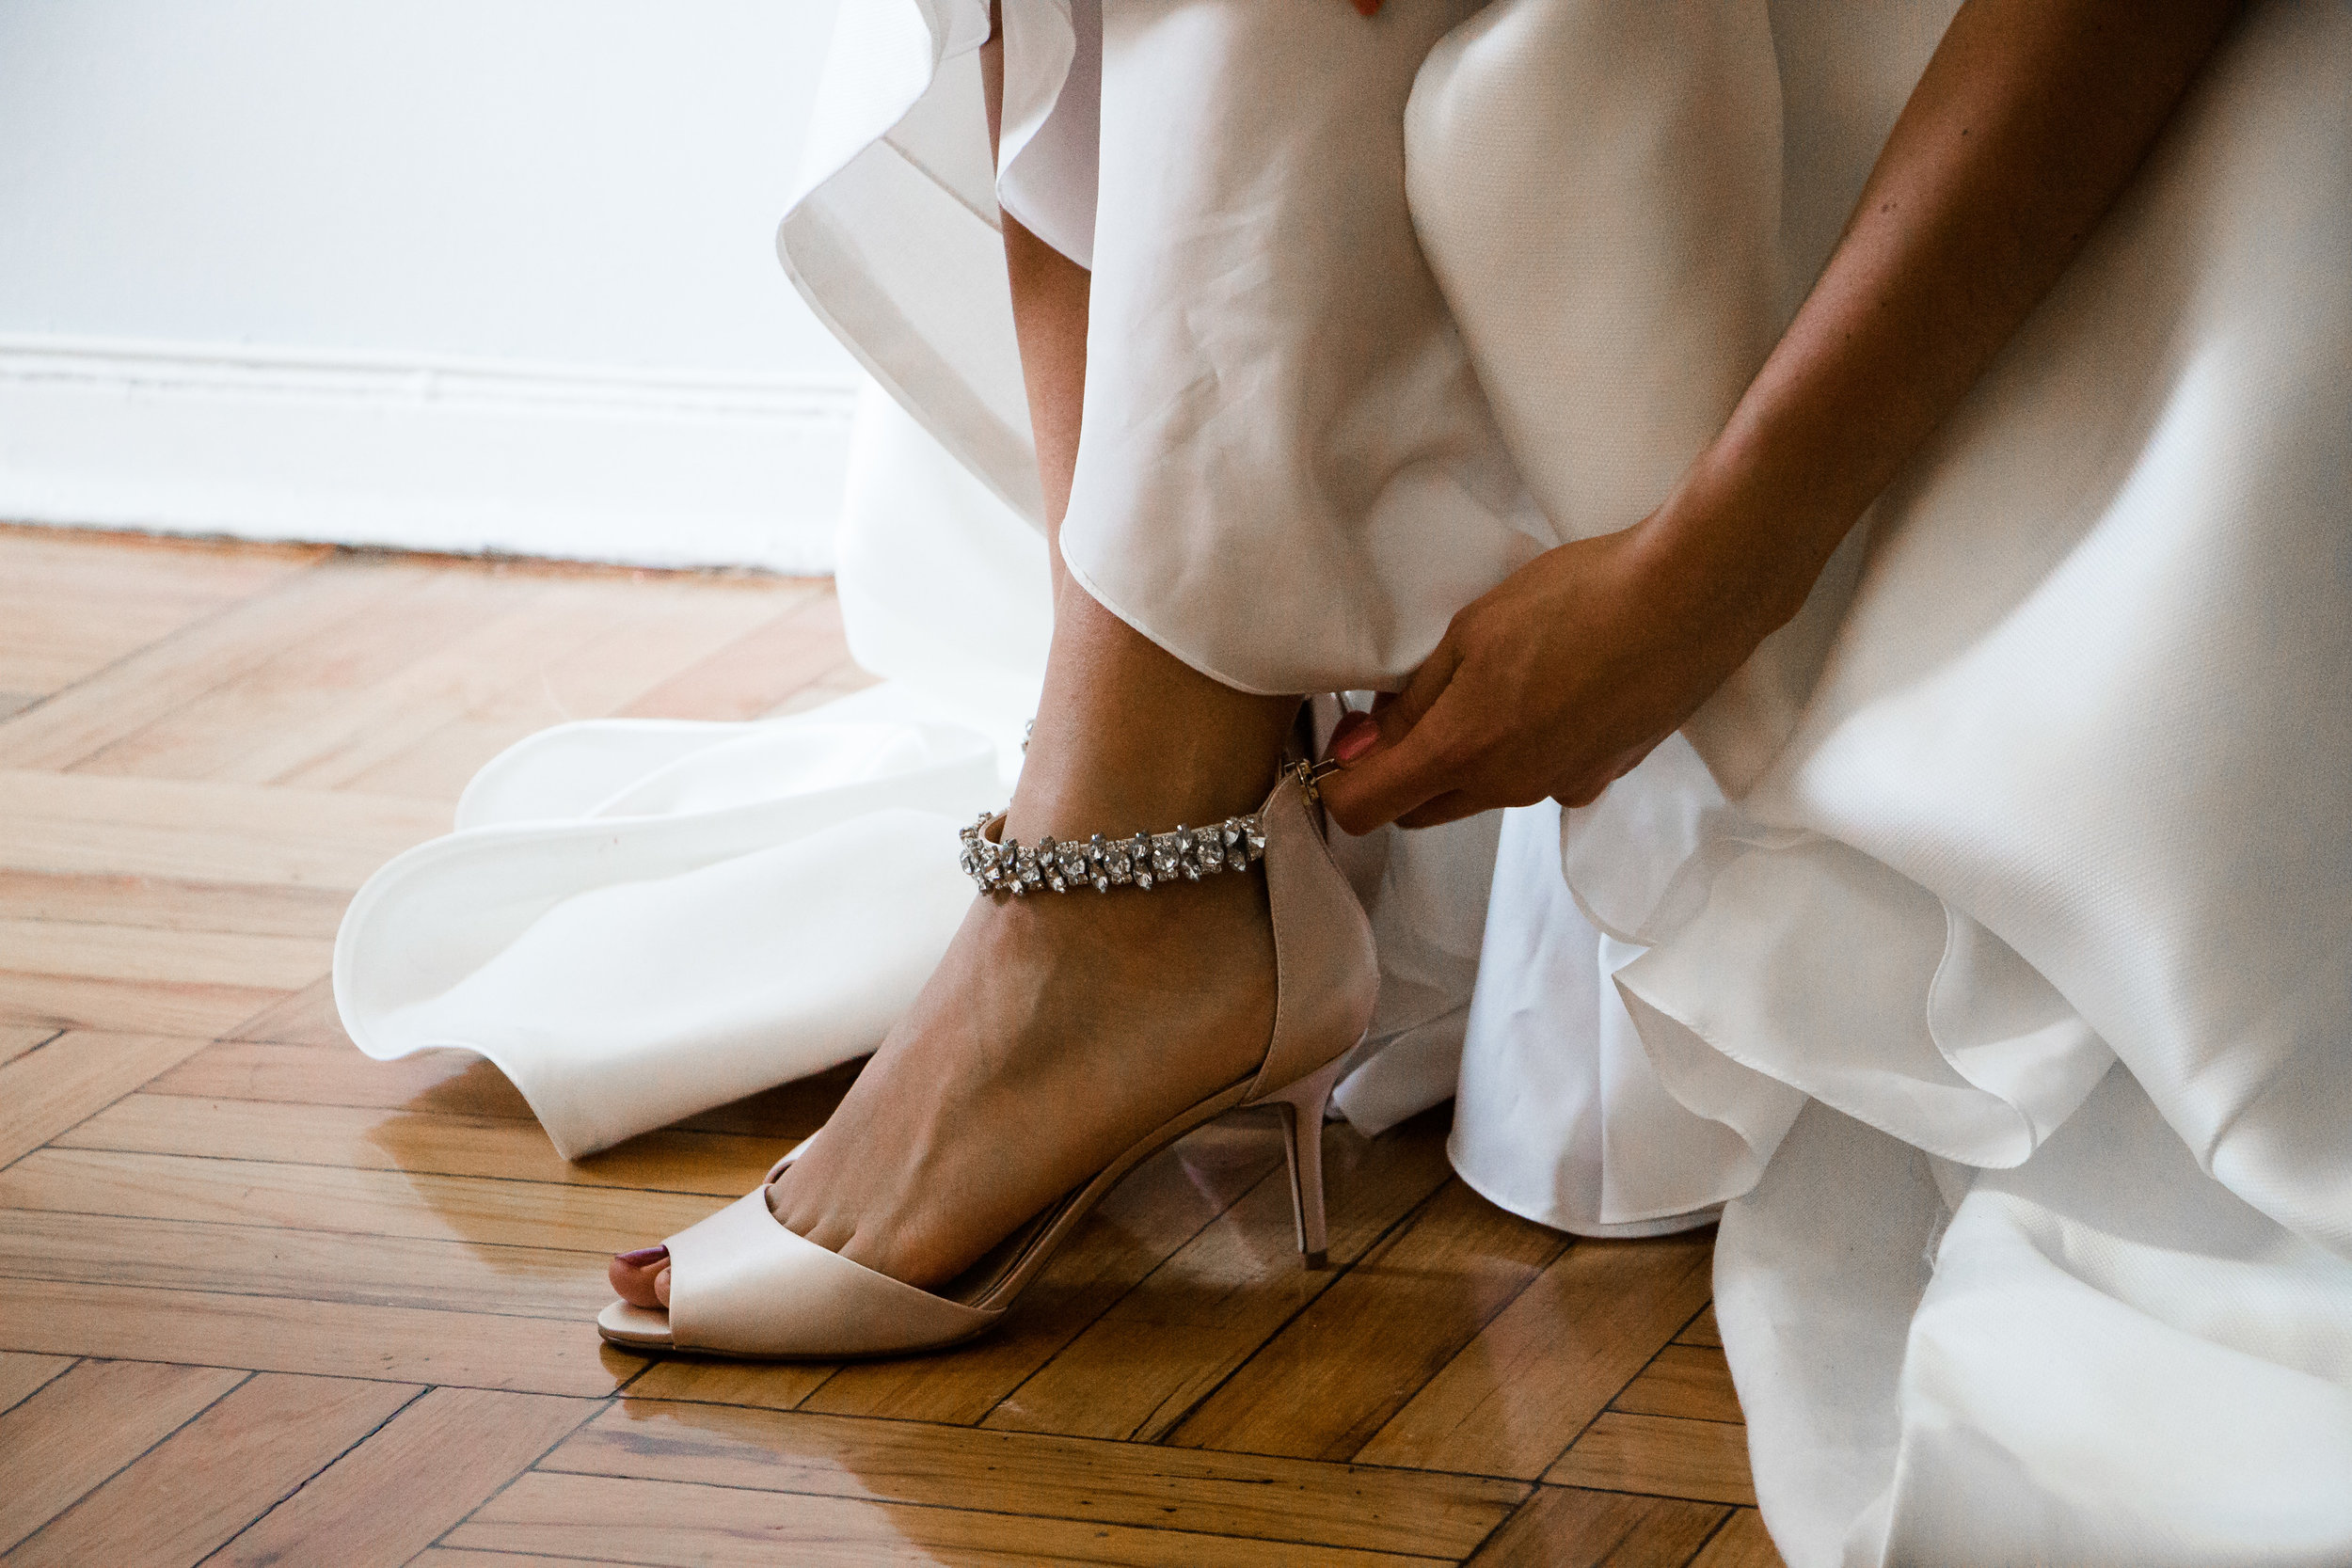 wallkill wedding photographer bride shoes.jpg